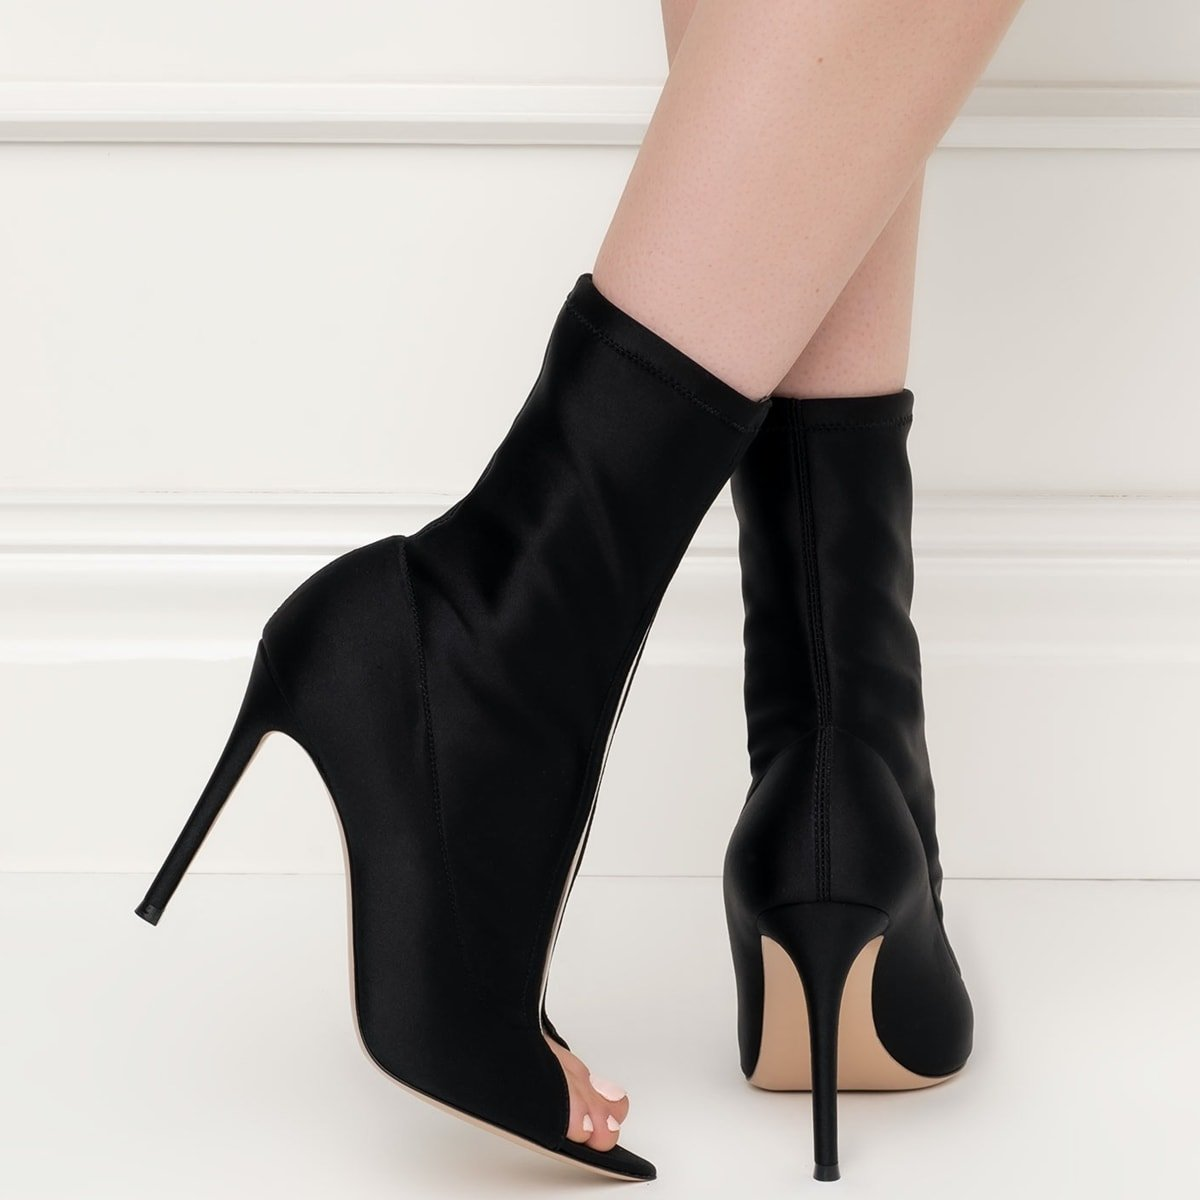 Gianvito Rossi's Hiroko peep-toe booties are defined by the clear strip that runs down the shoe